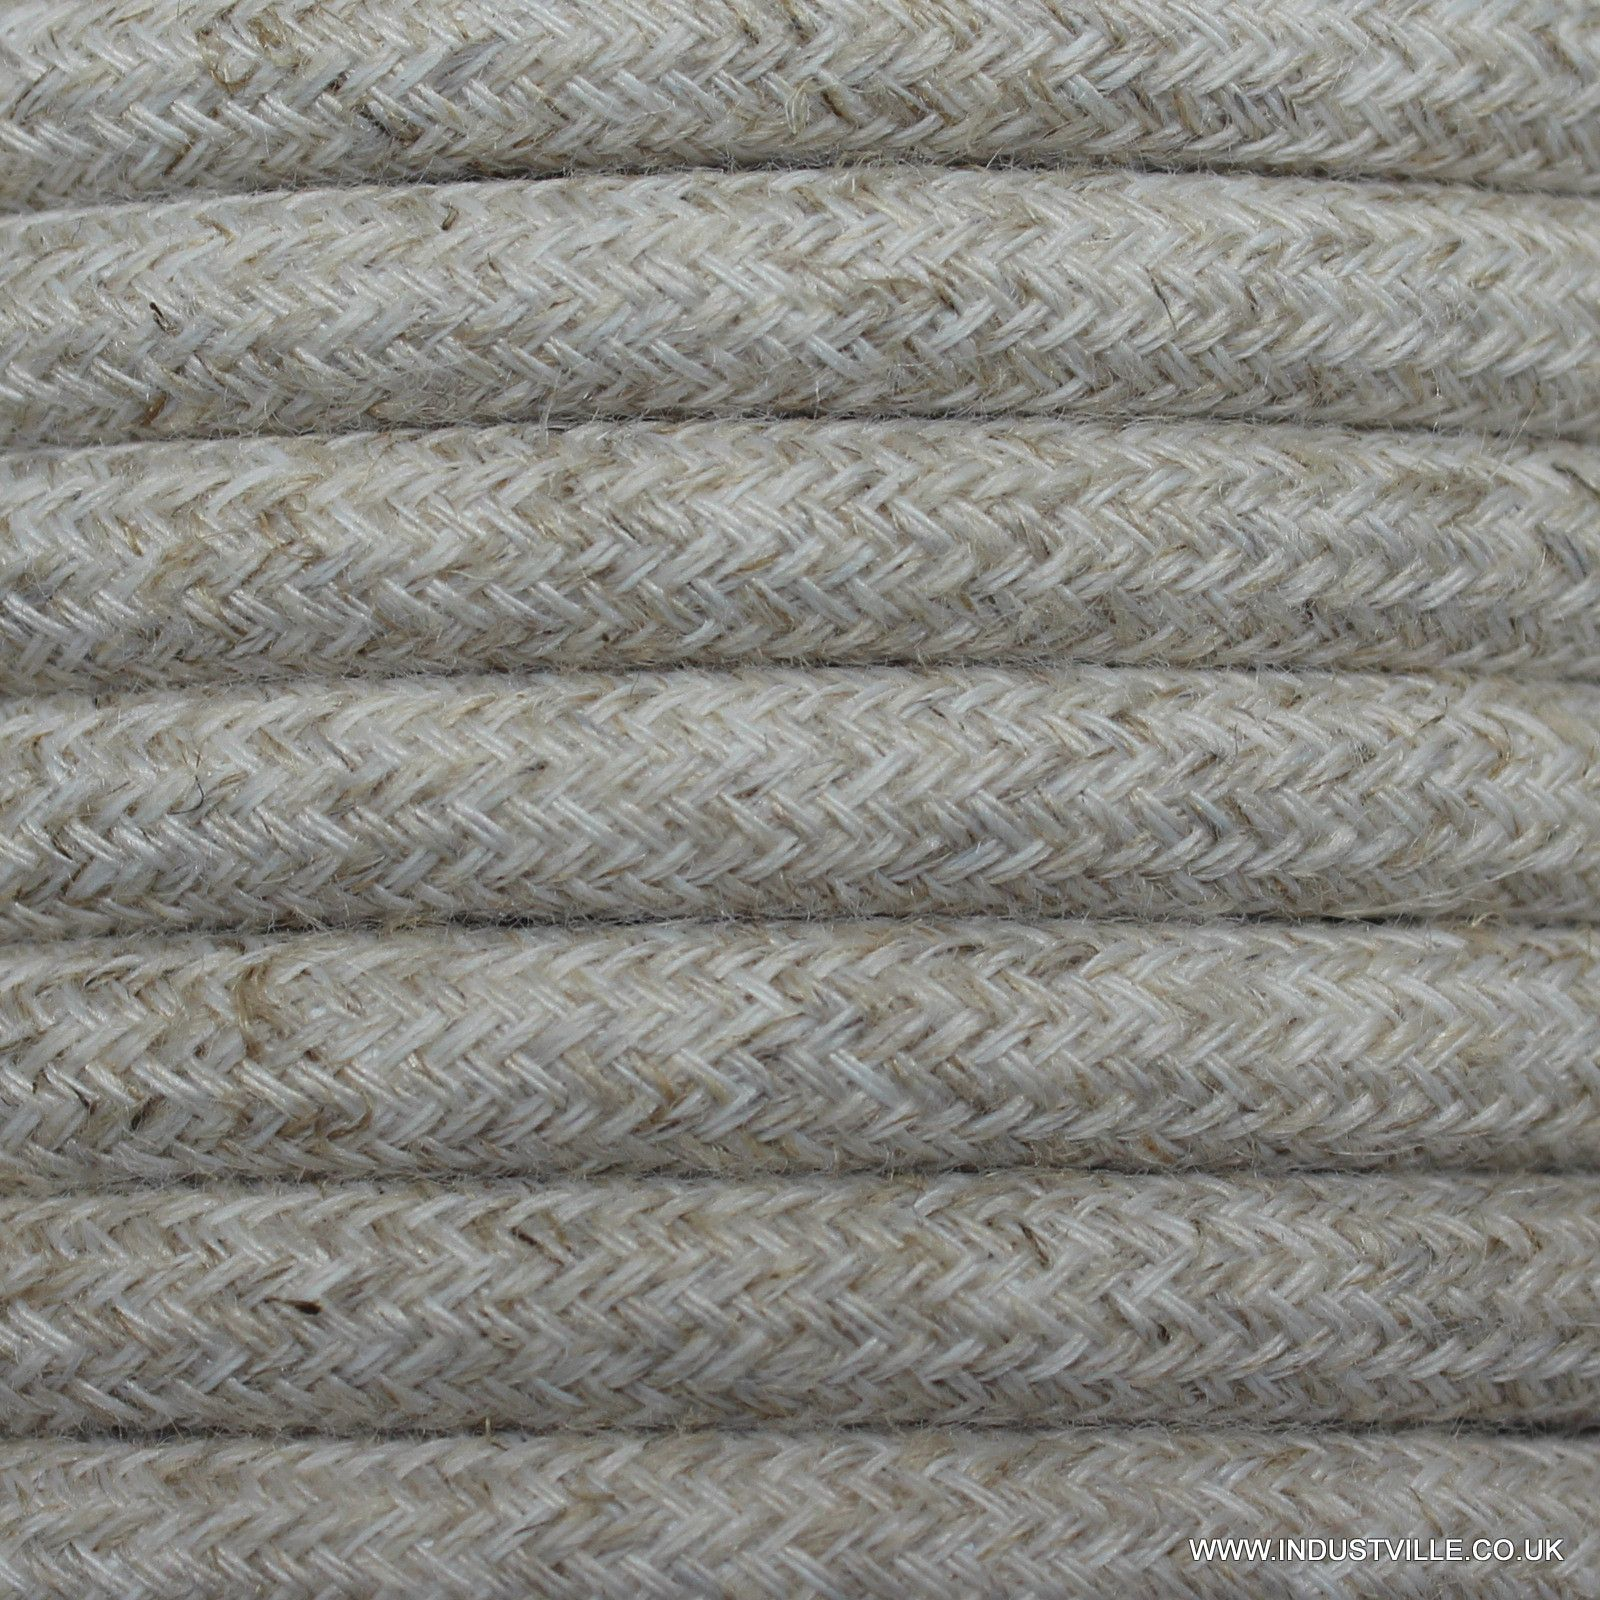 Linen Round Fabric Flex - 3 Core Braided Cloth Cable Lighting Wire ...